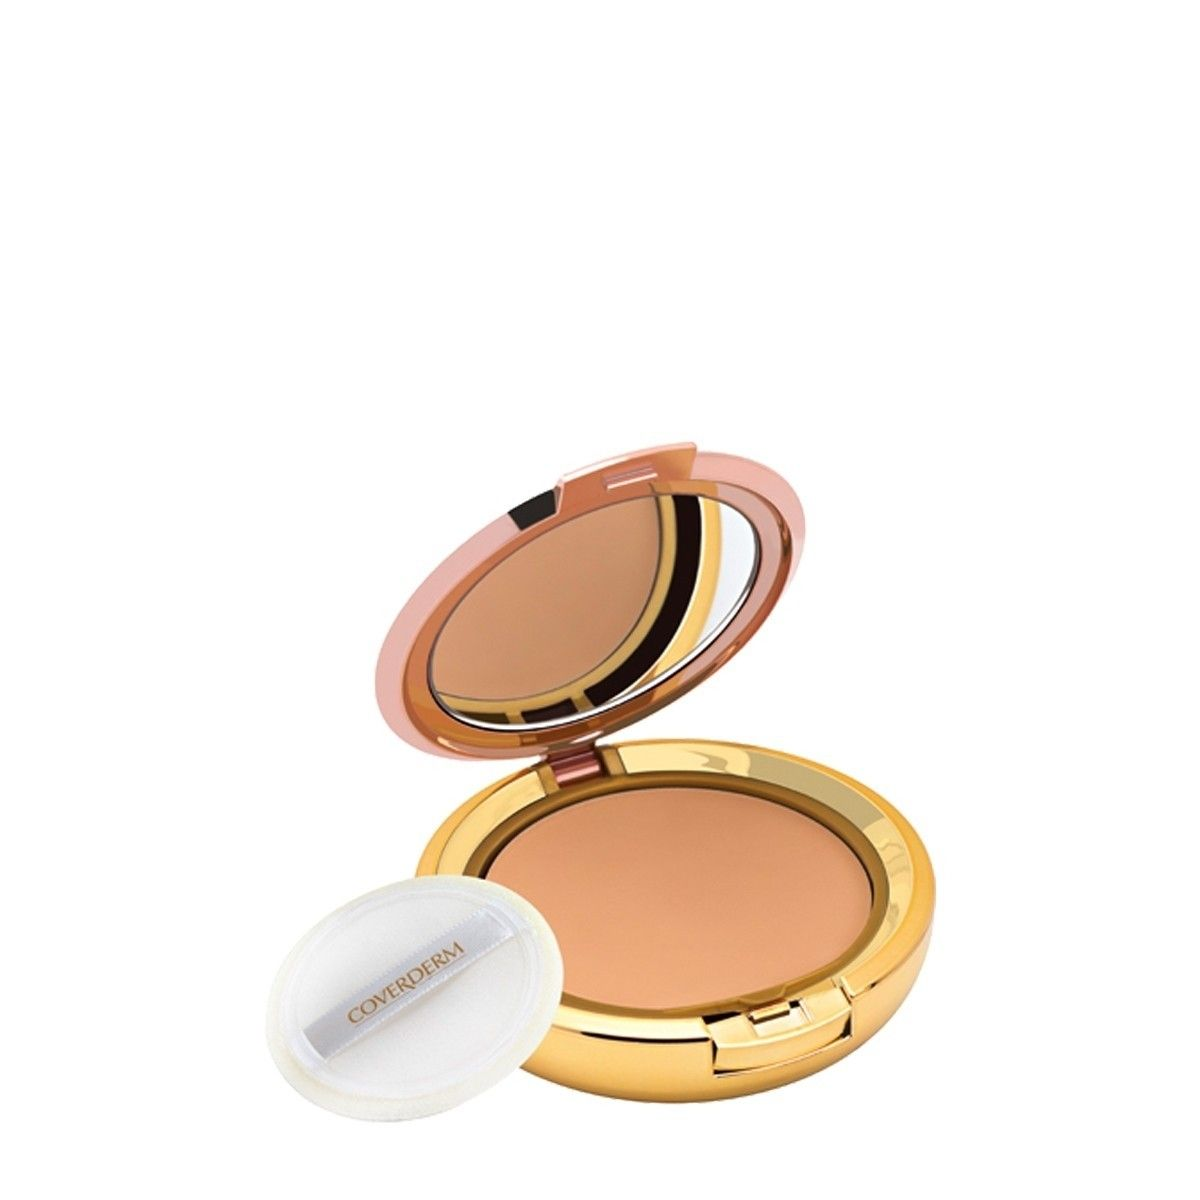 Afbeelding van Coverderm Compact Powder Color Normal 4 Poeder Make up